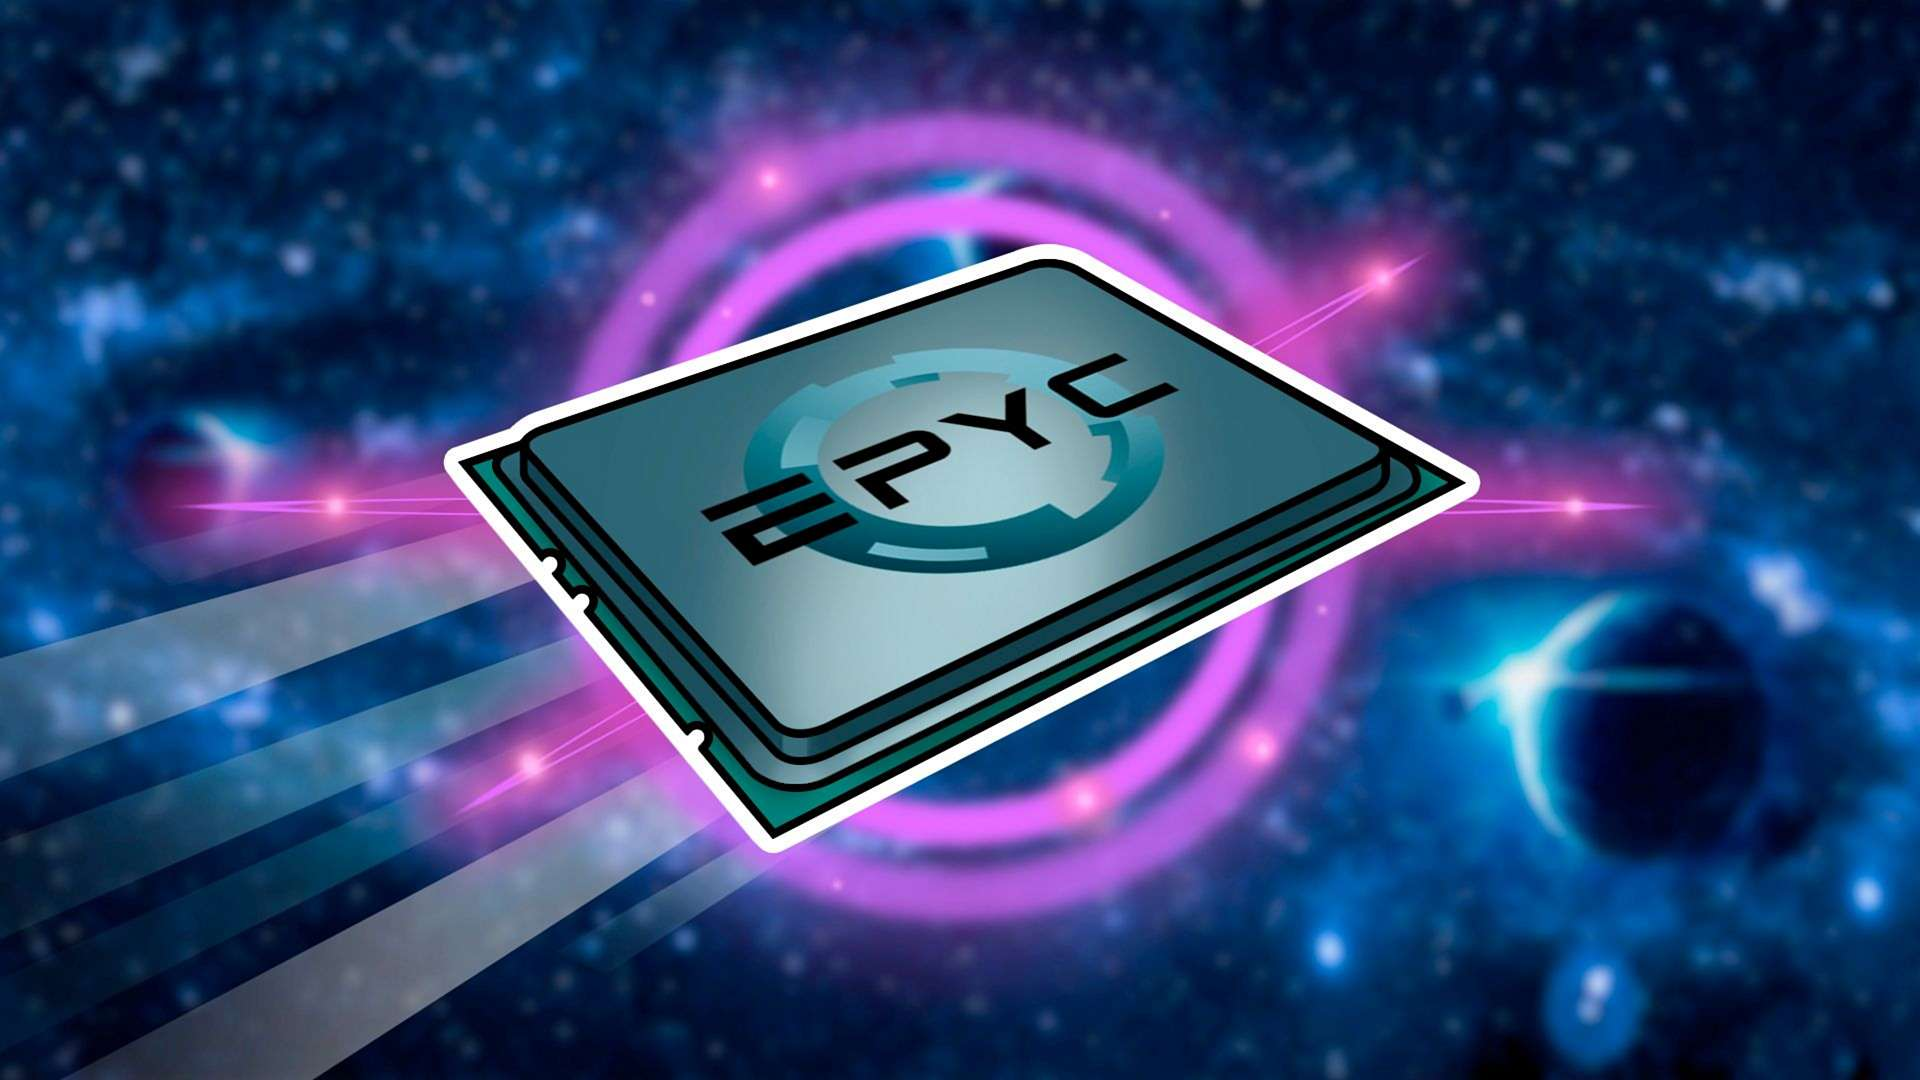 Hivelocity presents instantly deployable dedicated servers based on AMD EPYC